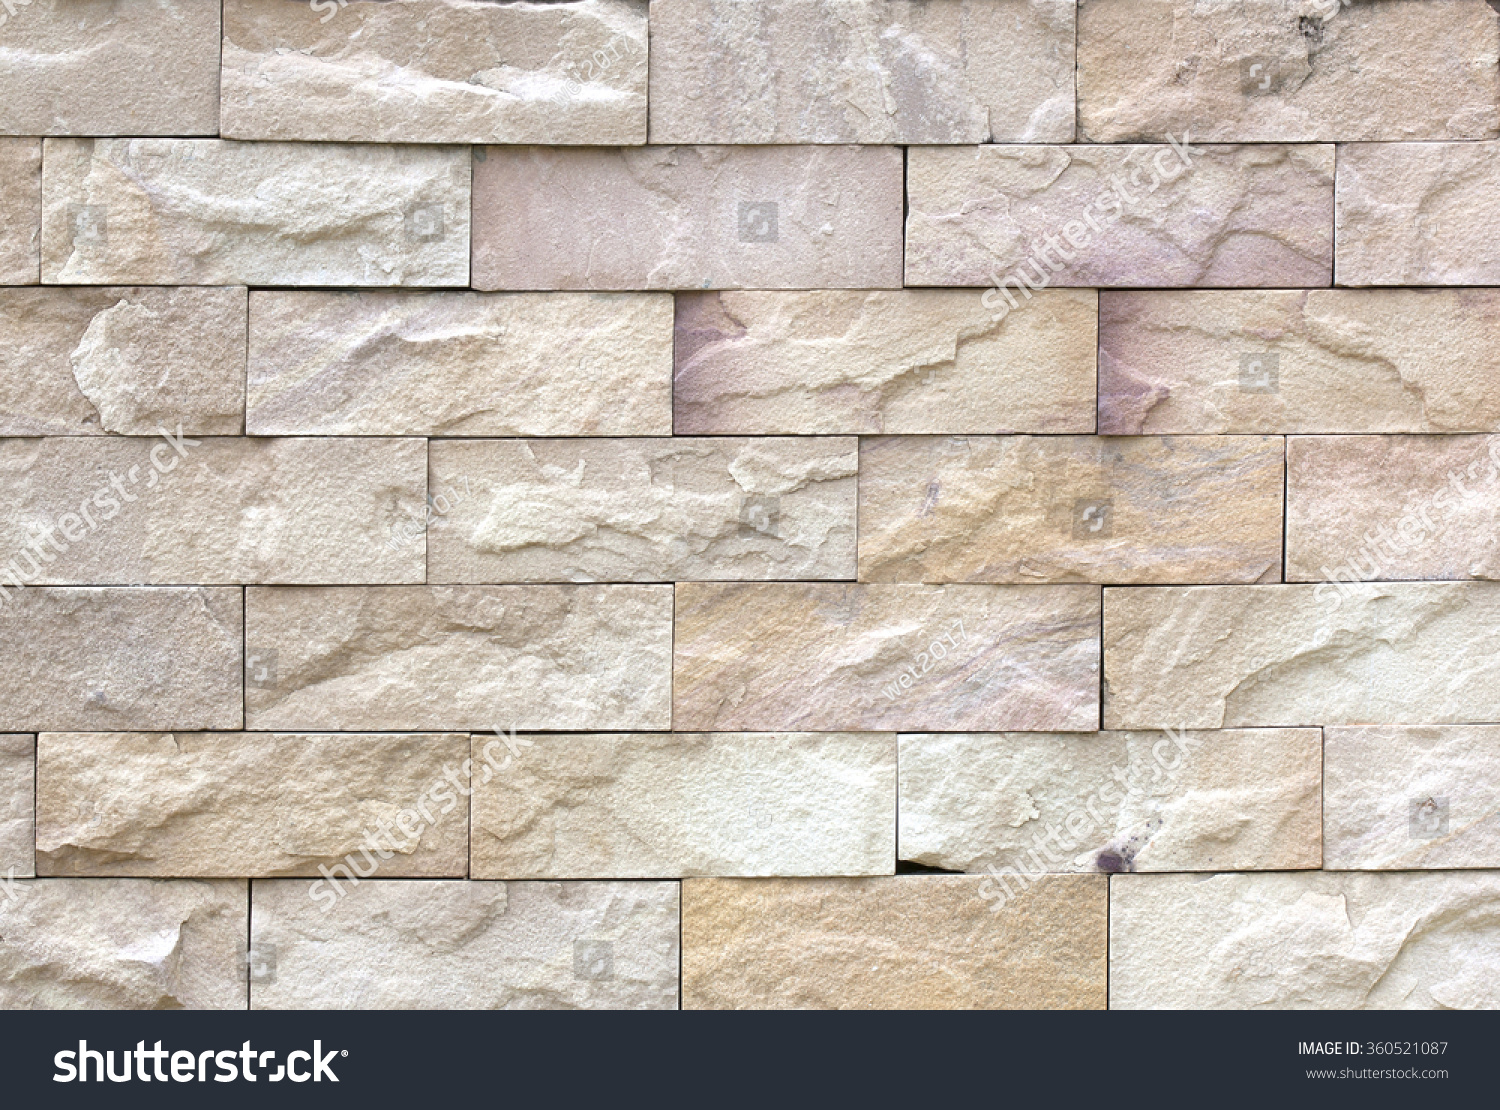 Elegant stone wall small square parts stock photo for Elegant stone